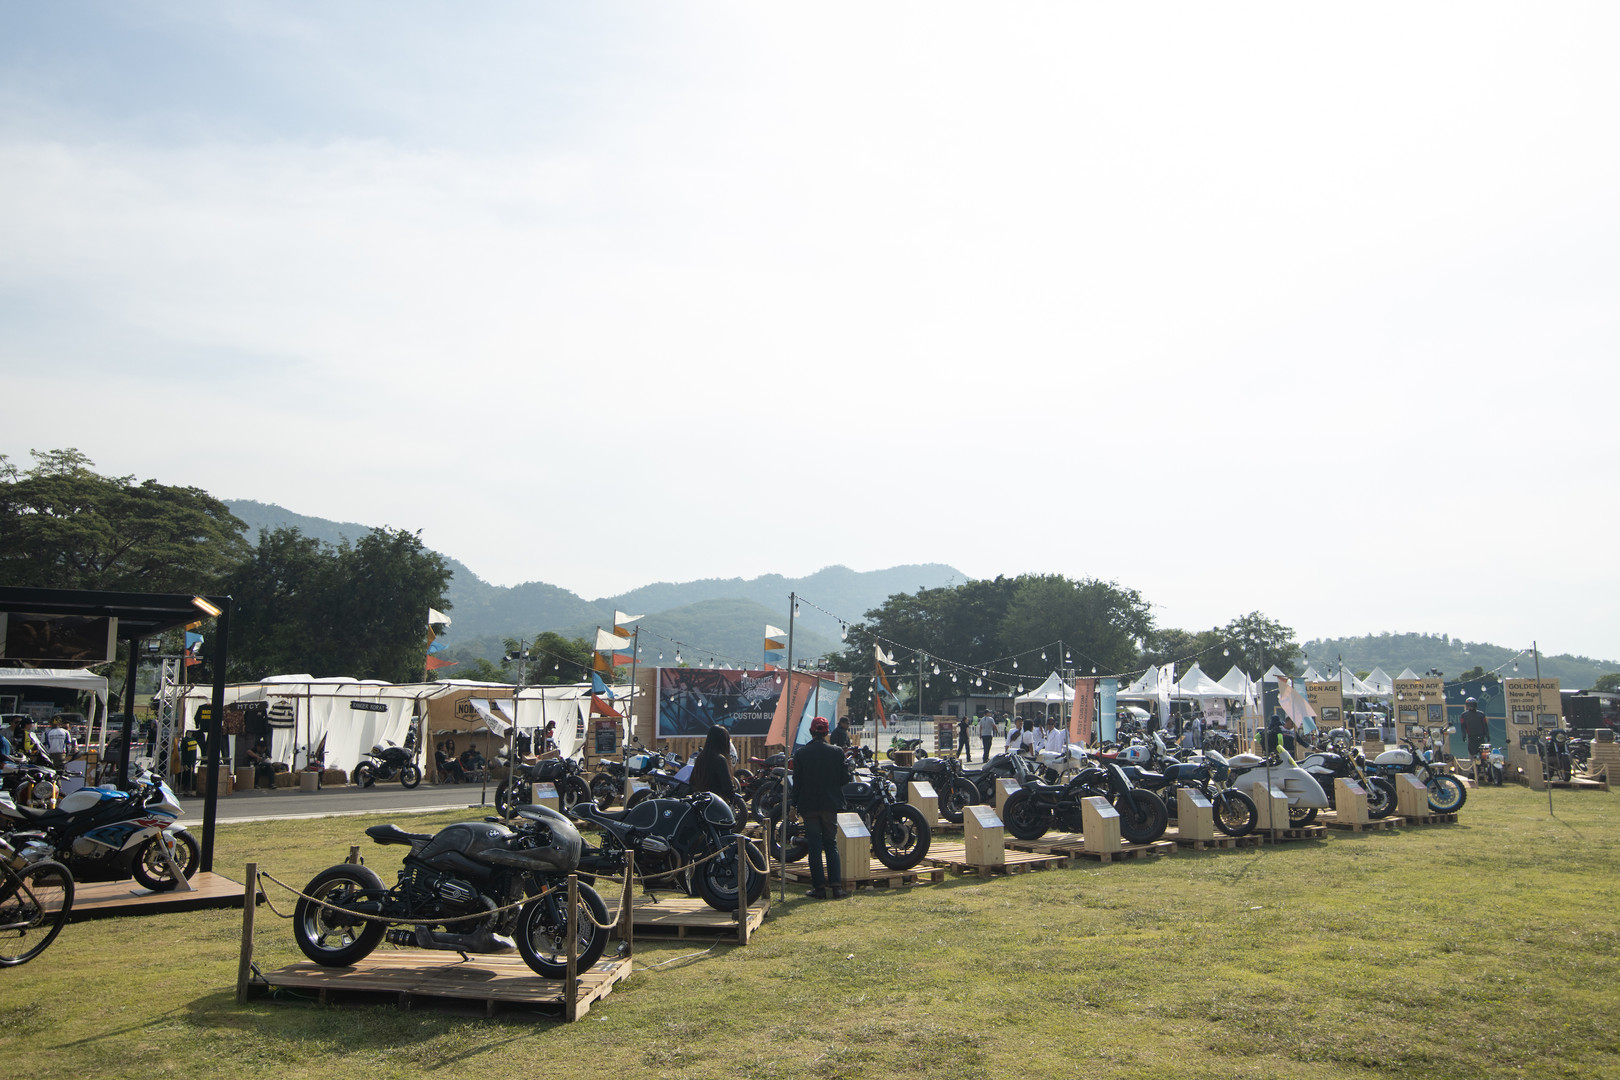 Khao Yai - Venue For The Celebration Of Motorrad Day